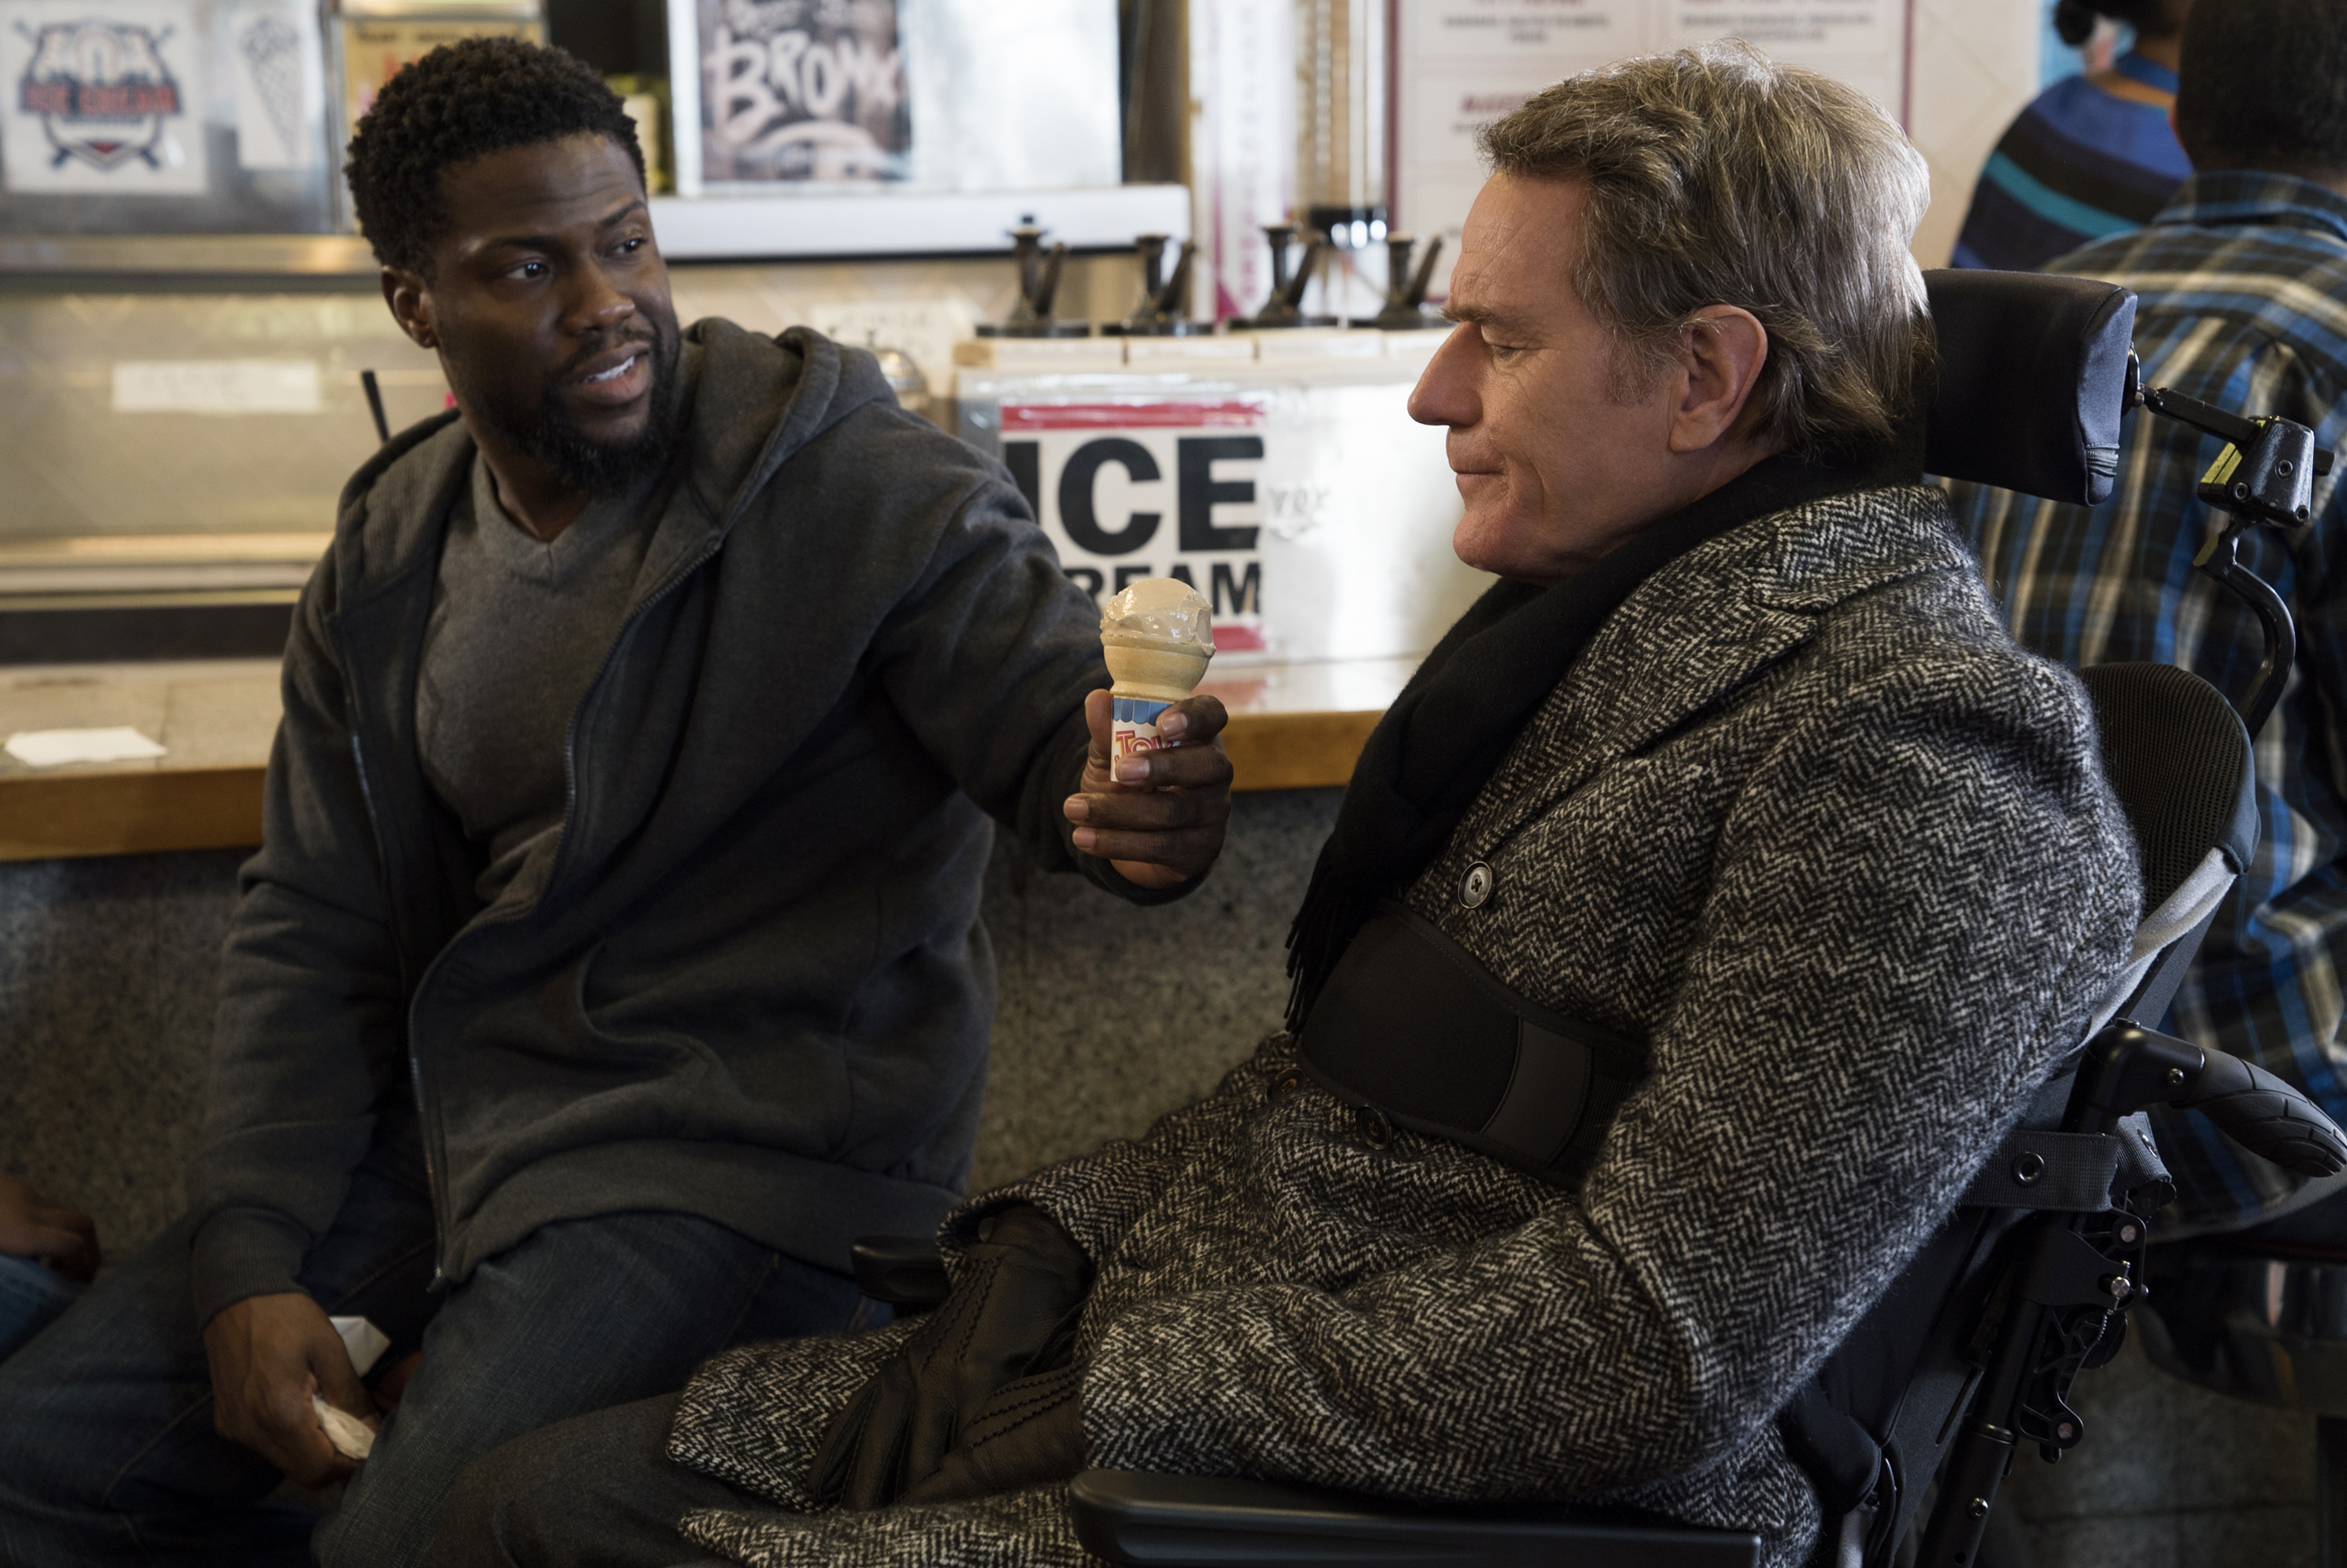 'The Upside' is Uplifting but Lacks Nuance